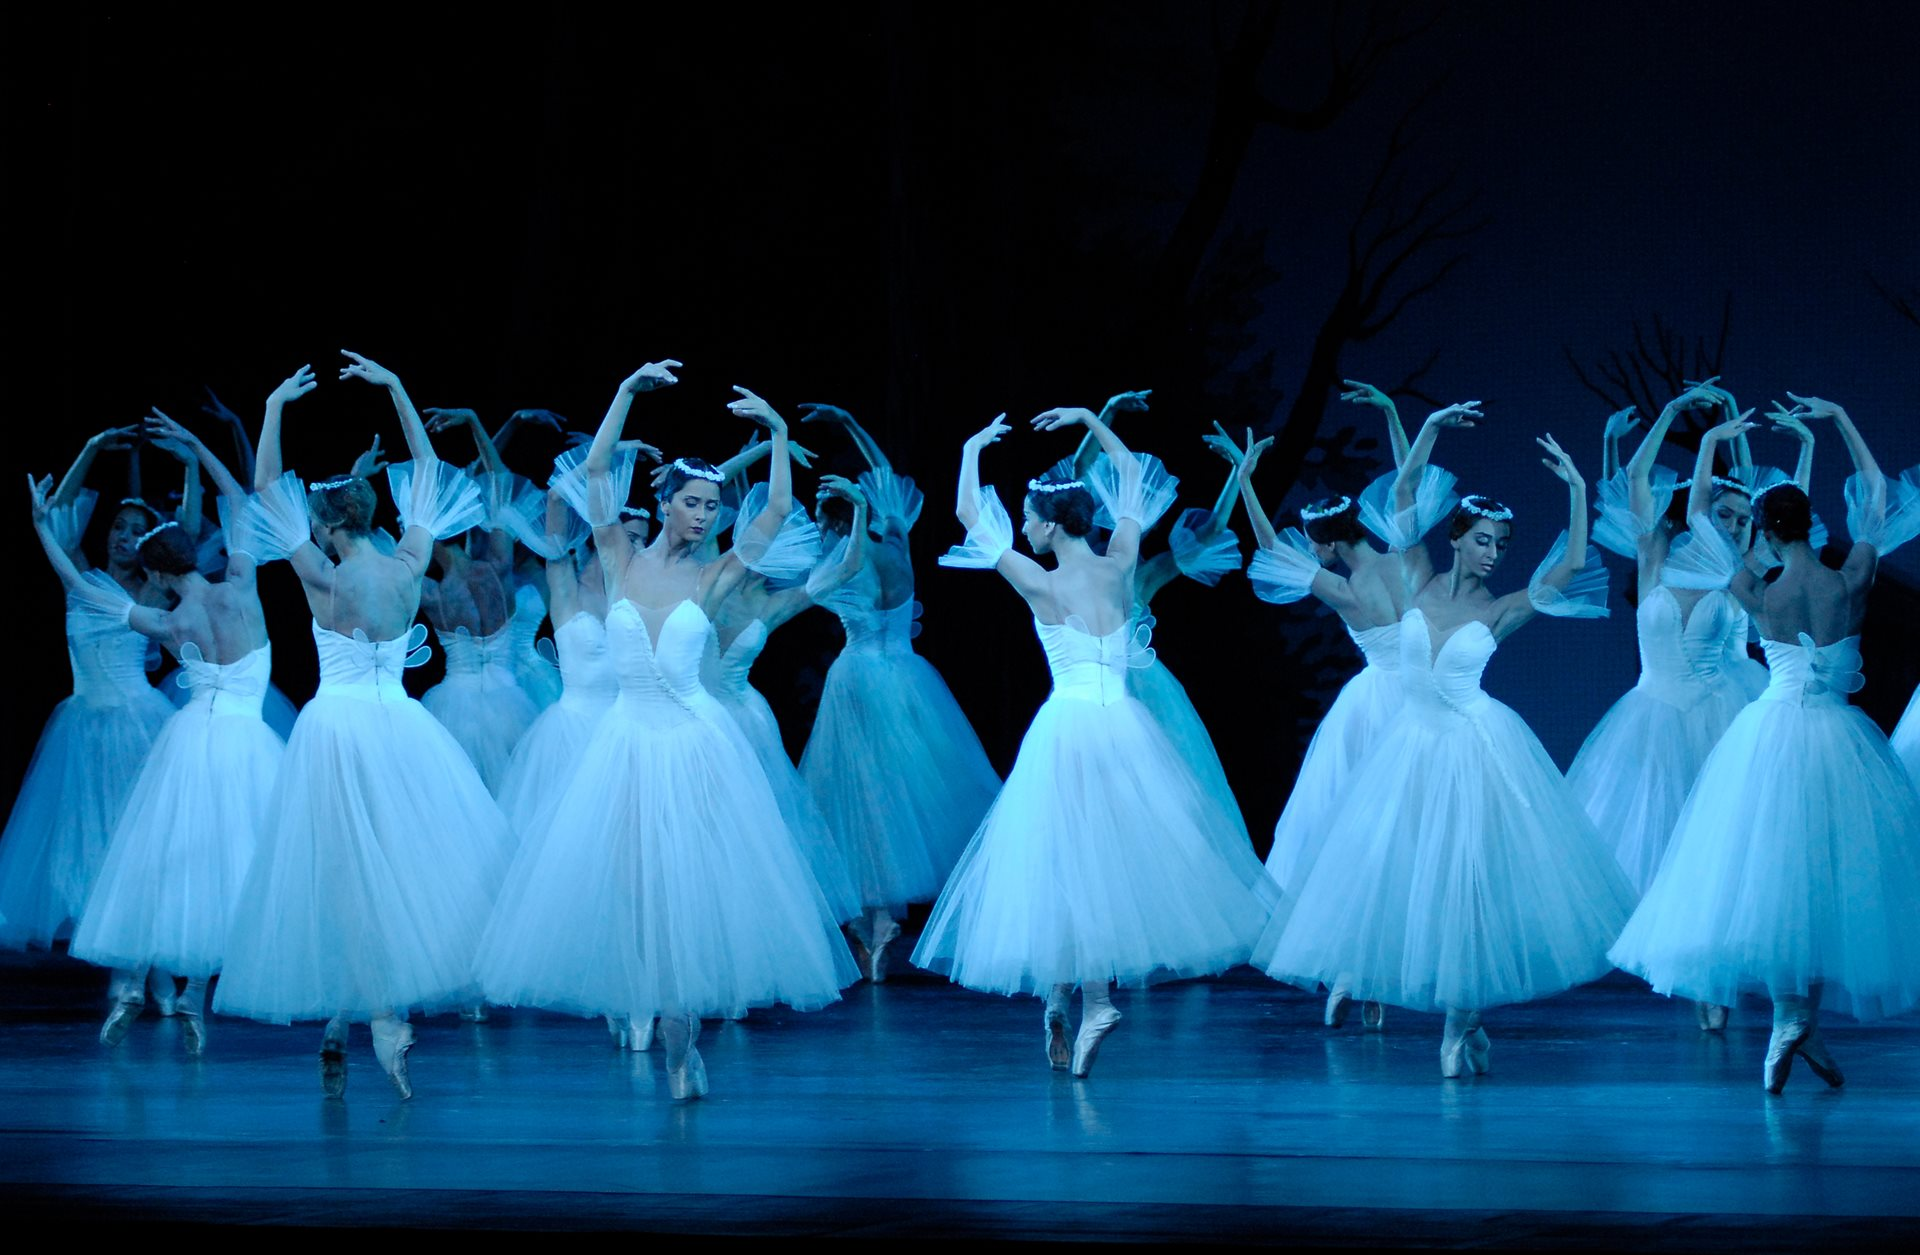 165th Ballet Season Opening. Giselle.